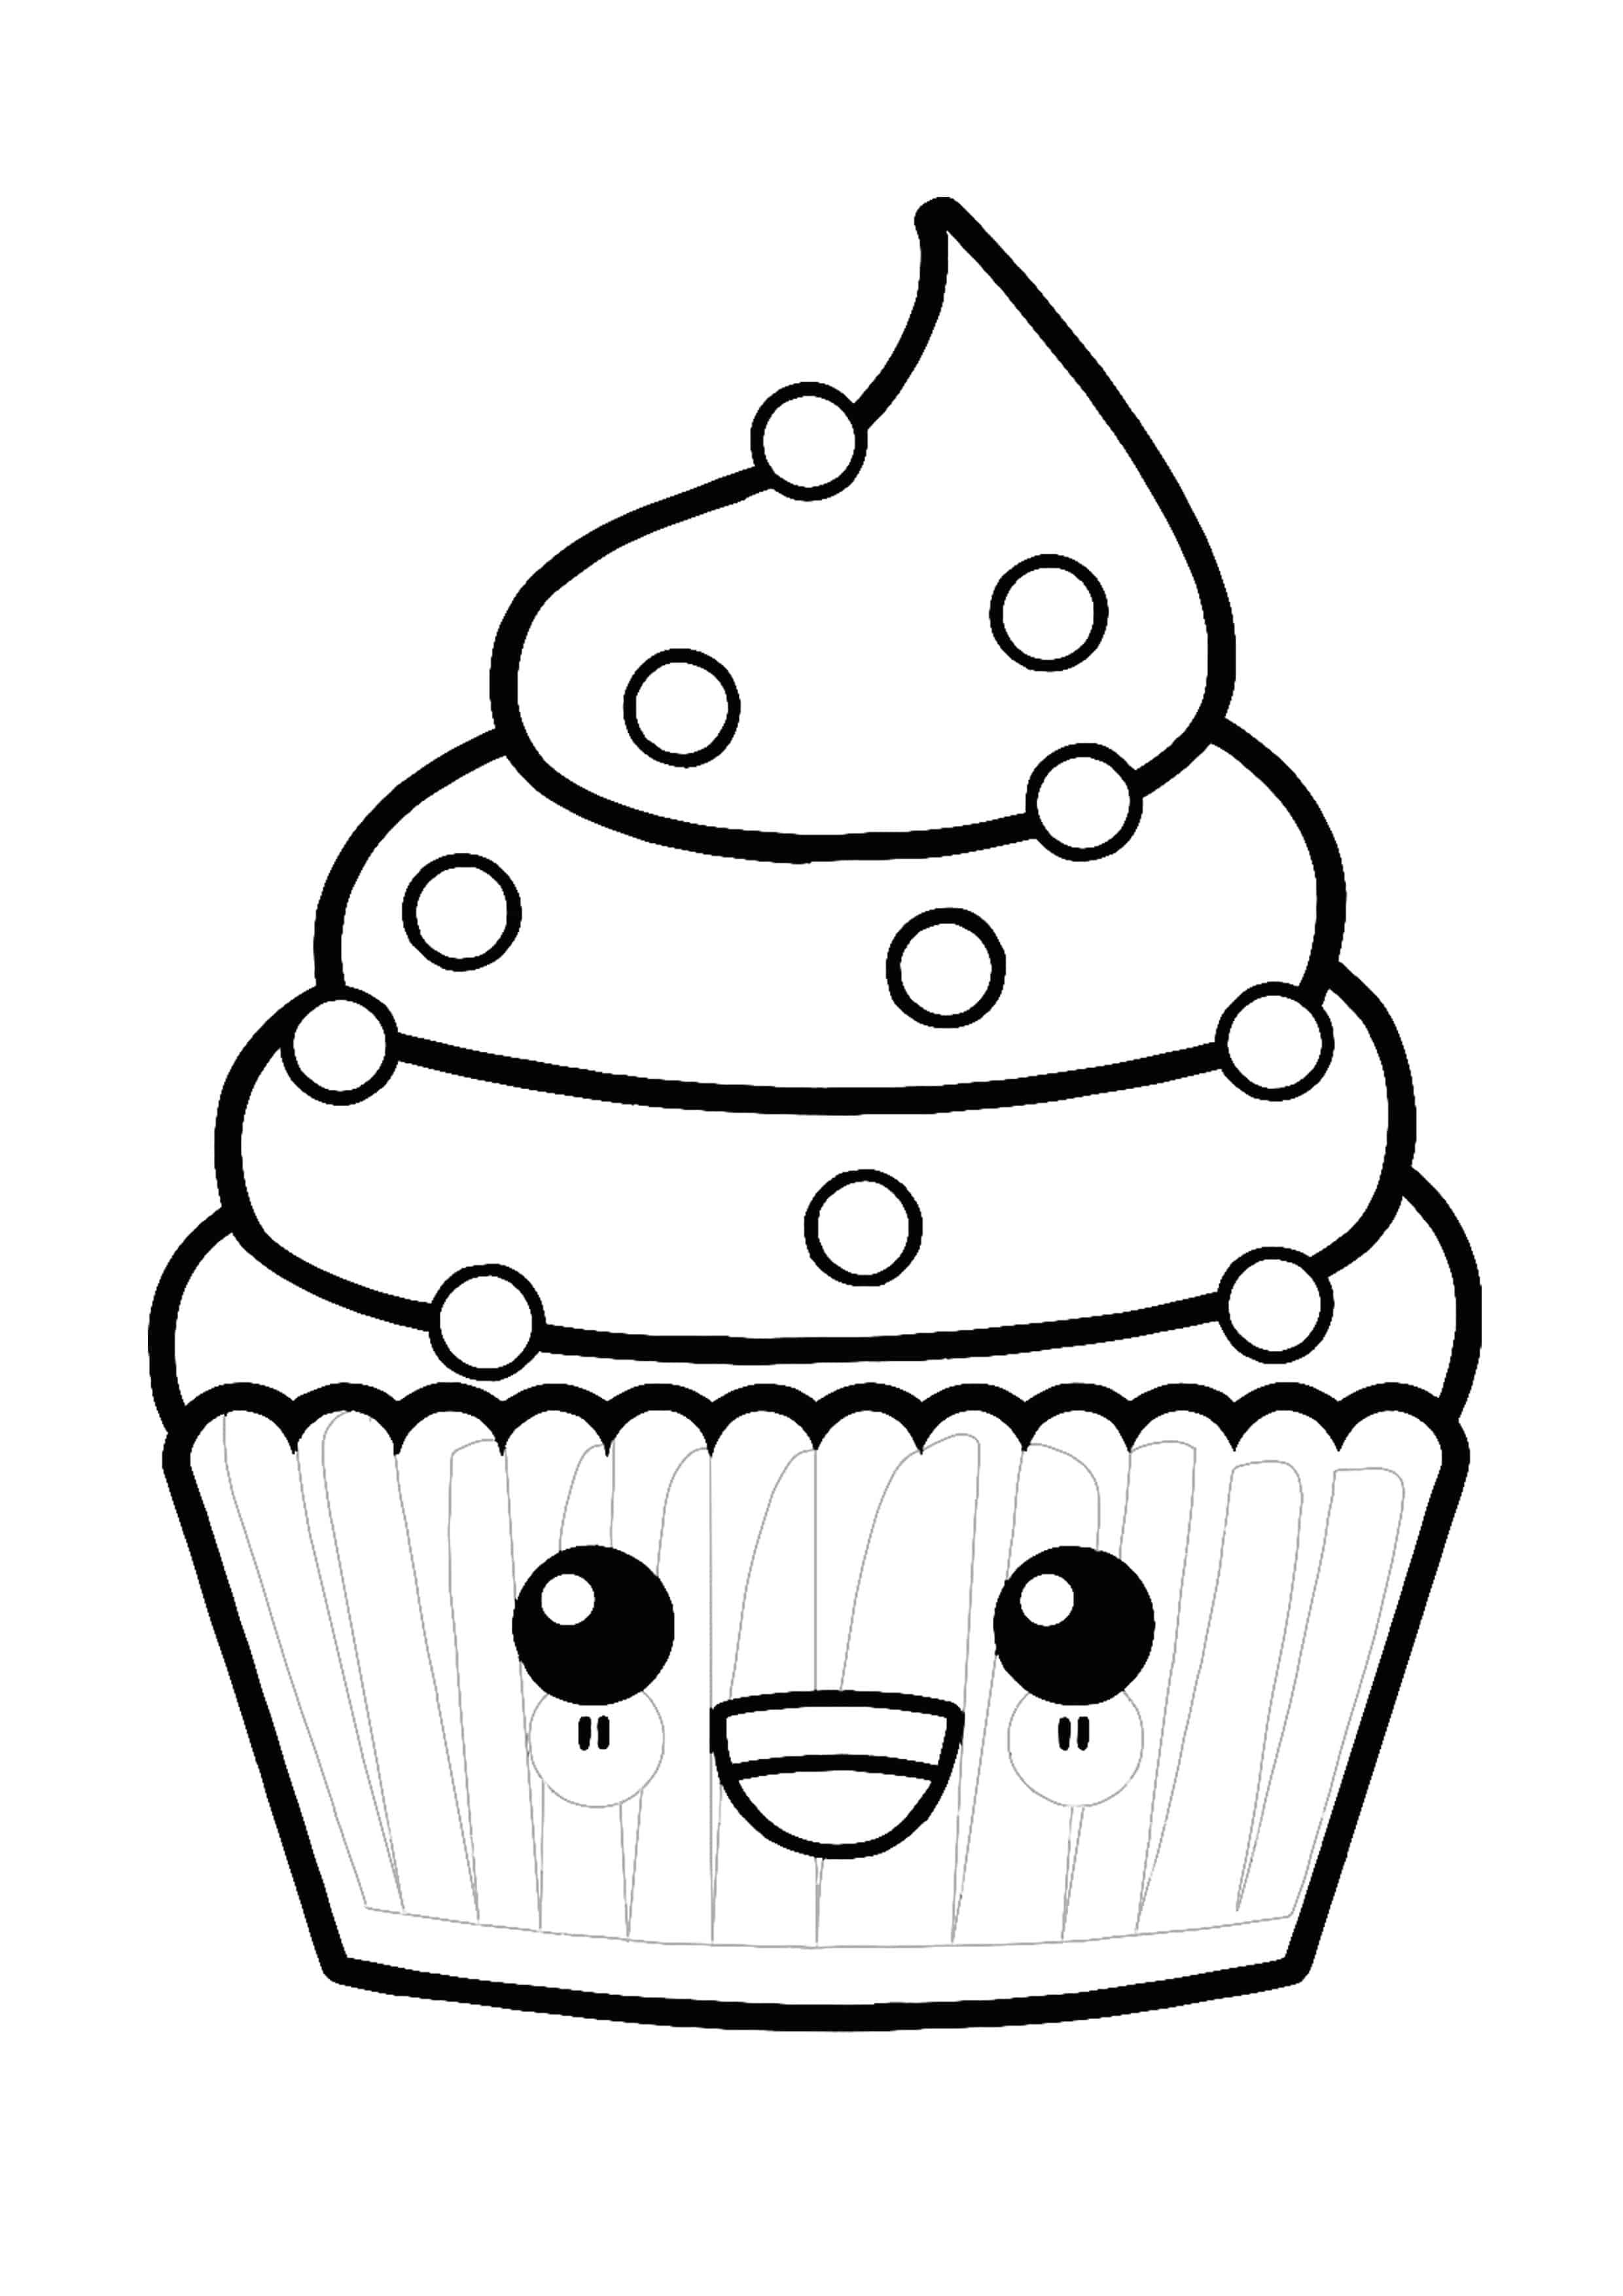 Kawaii Delicious Cupcake Coloring Page Cupcake Coloring Pages Donut Coloring Page Coloring Pages